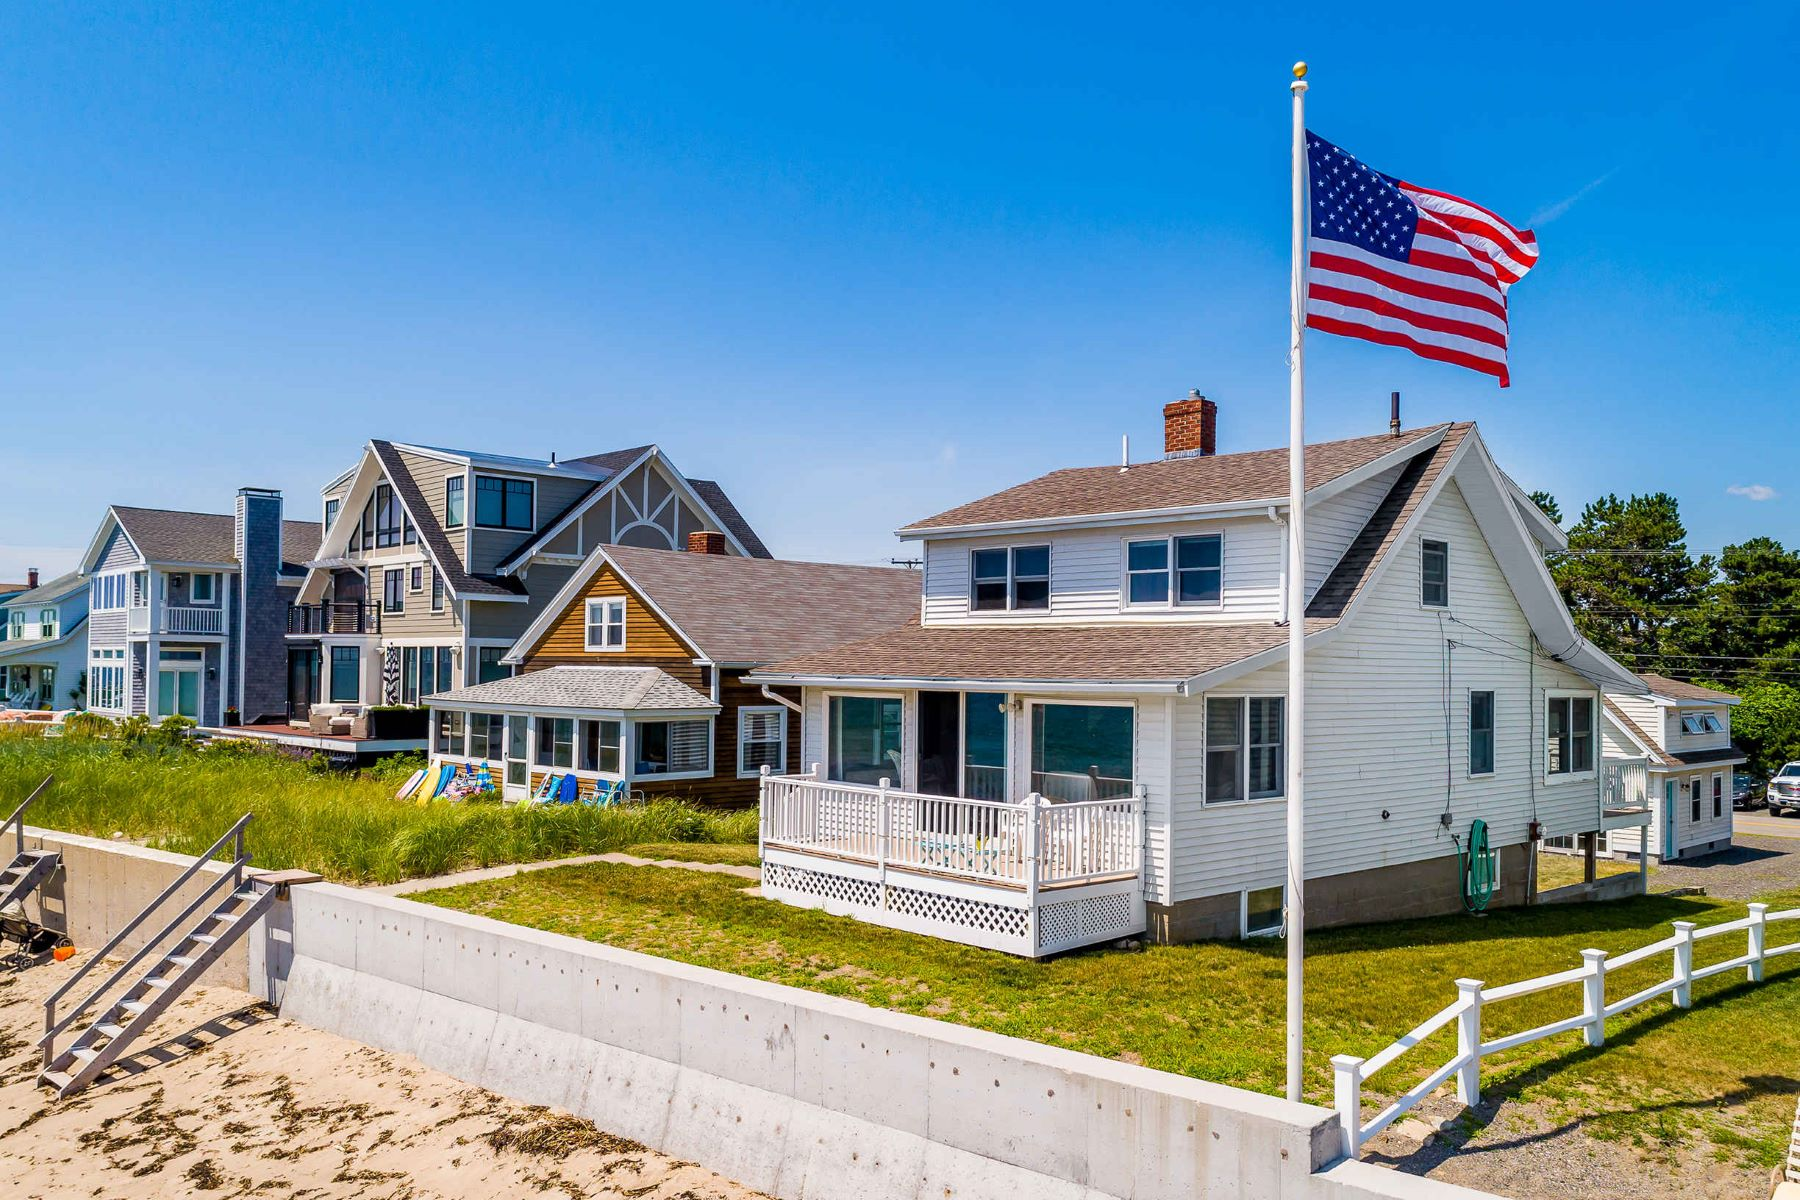 Single Family Homes for Sale at Year-round Oceanfront Bungalow on Moody Beach 493 Ocean Avenue, Wells, Maine 04054 United States